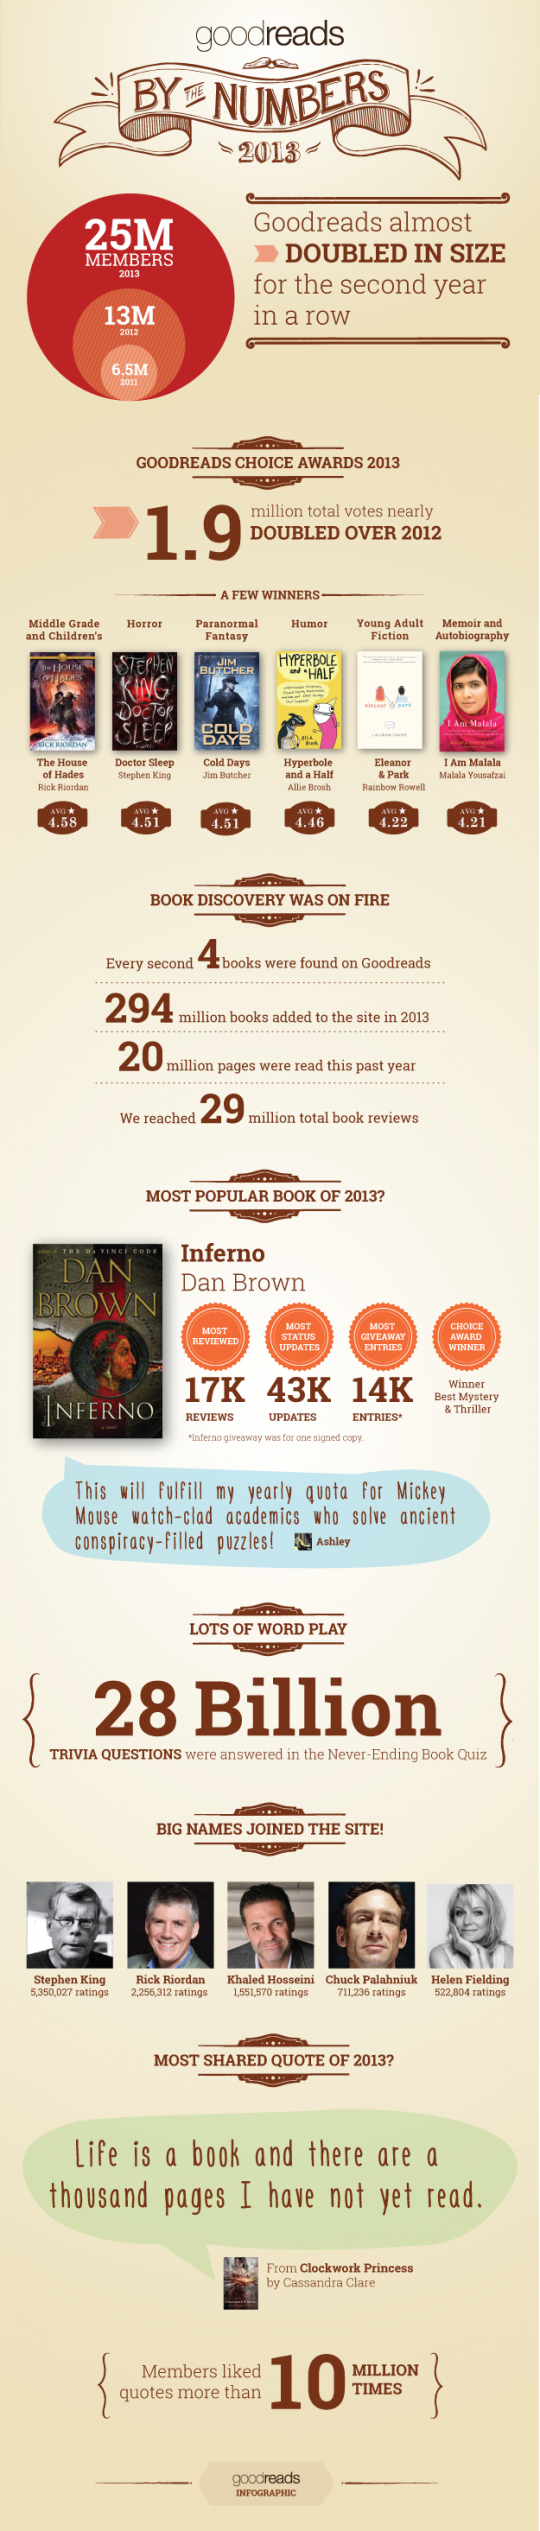 Goodreads infographic 2013